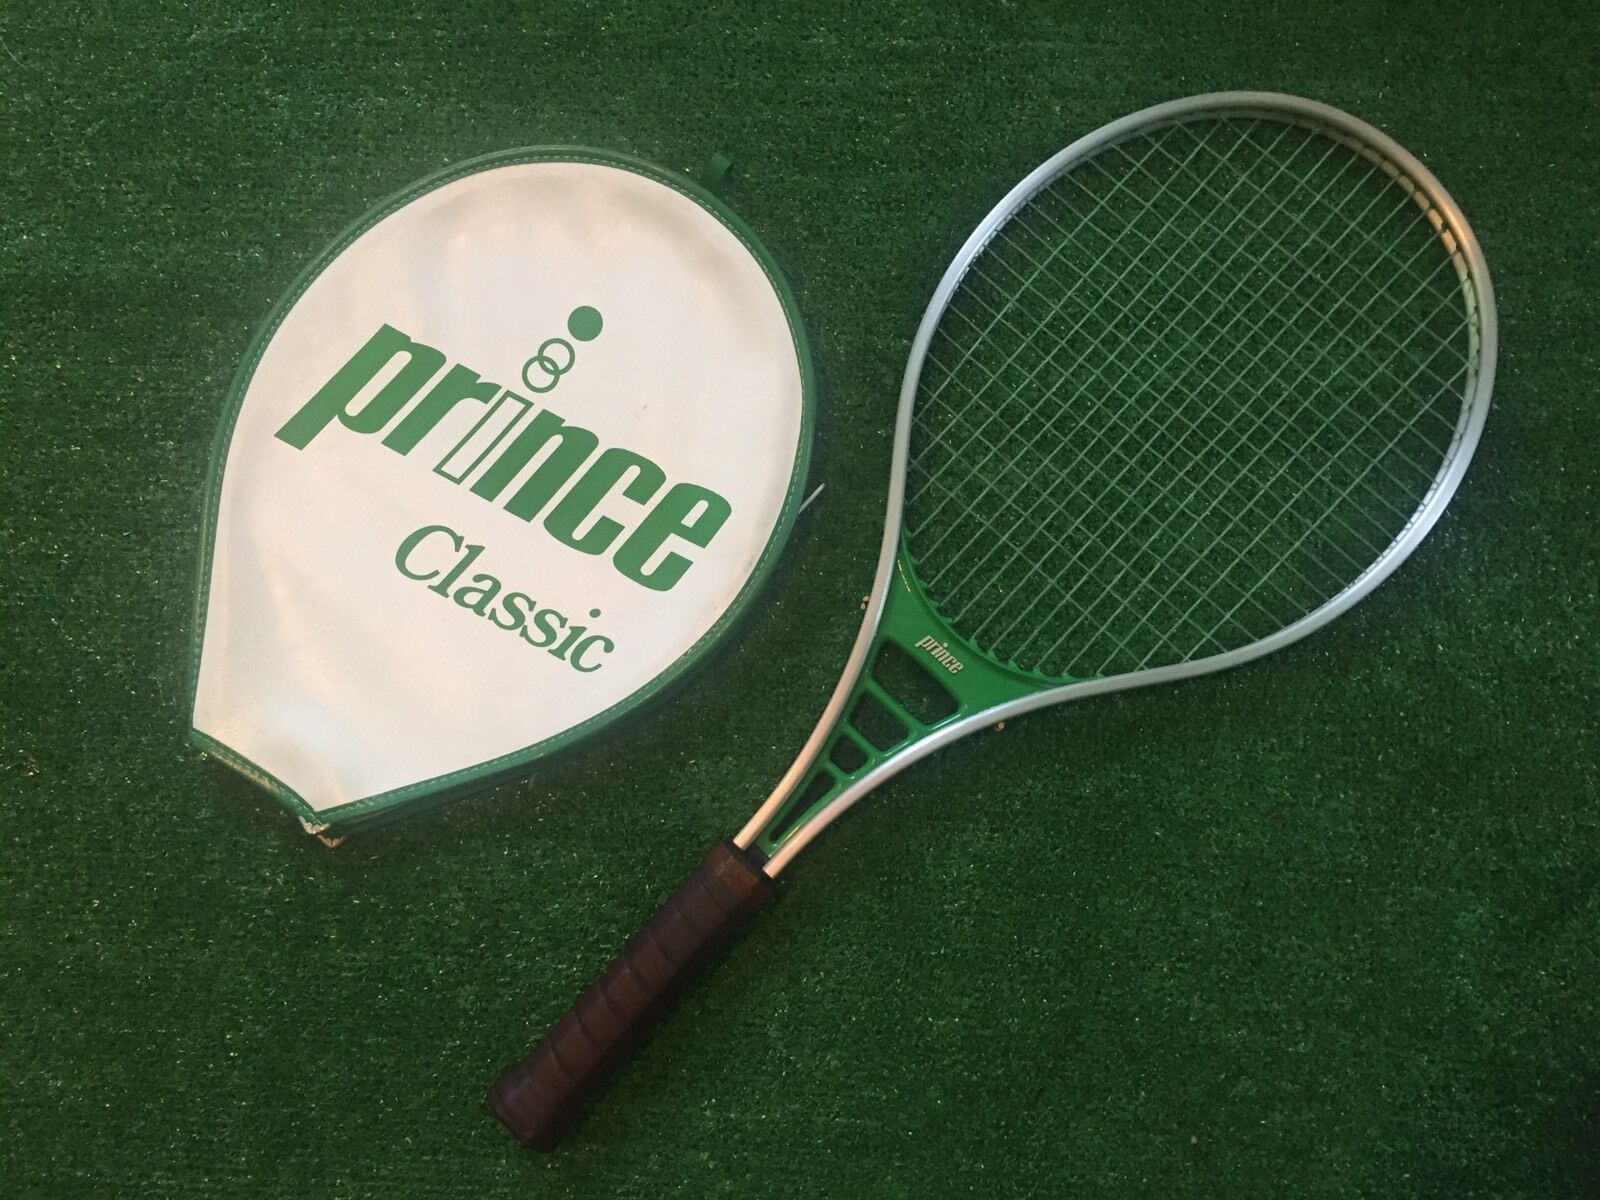 Prince Classic Tennis Racquet 4 1 2 with Cover Used